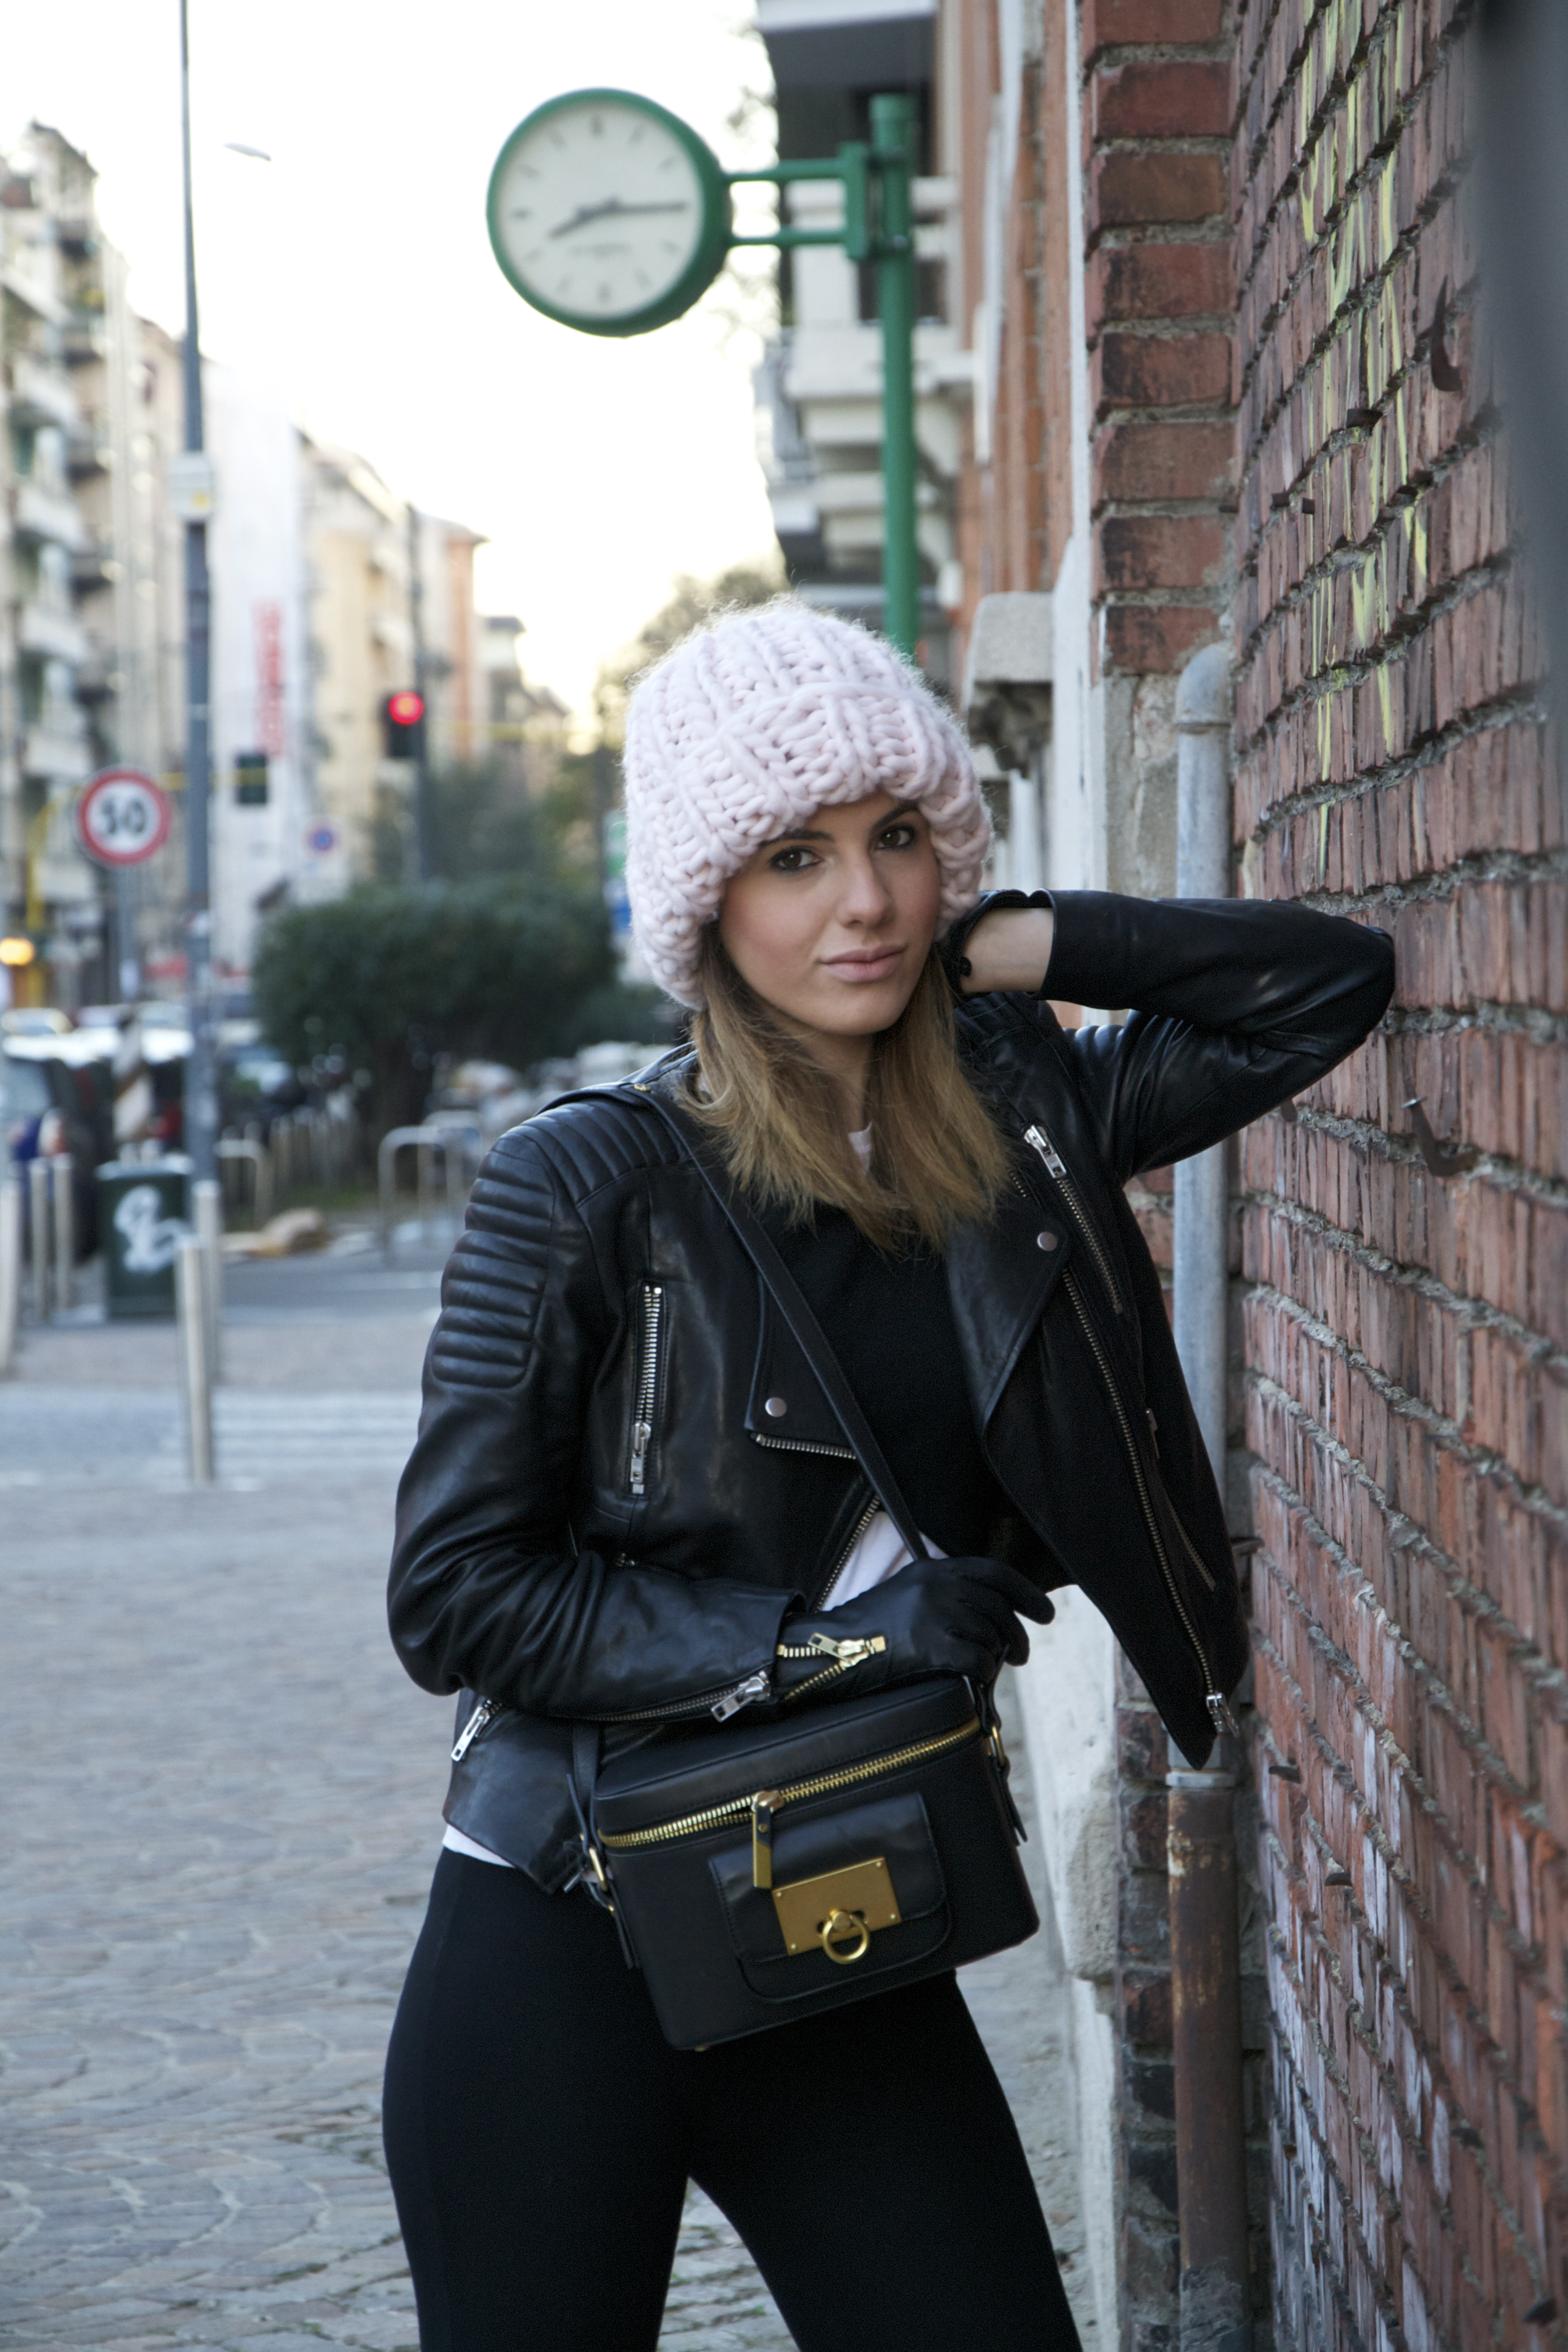 on sale 2ad00 559a5 BEANIE AND JACKET (similar here) HM – PANTS TEZENIS – TOP ZARA – BAG  OTHER  STORIES – SHOES NIKE